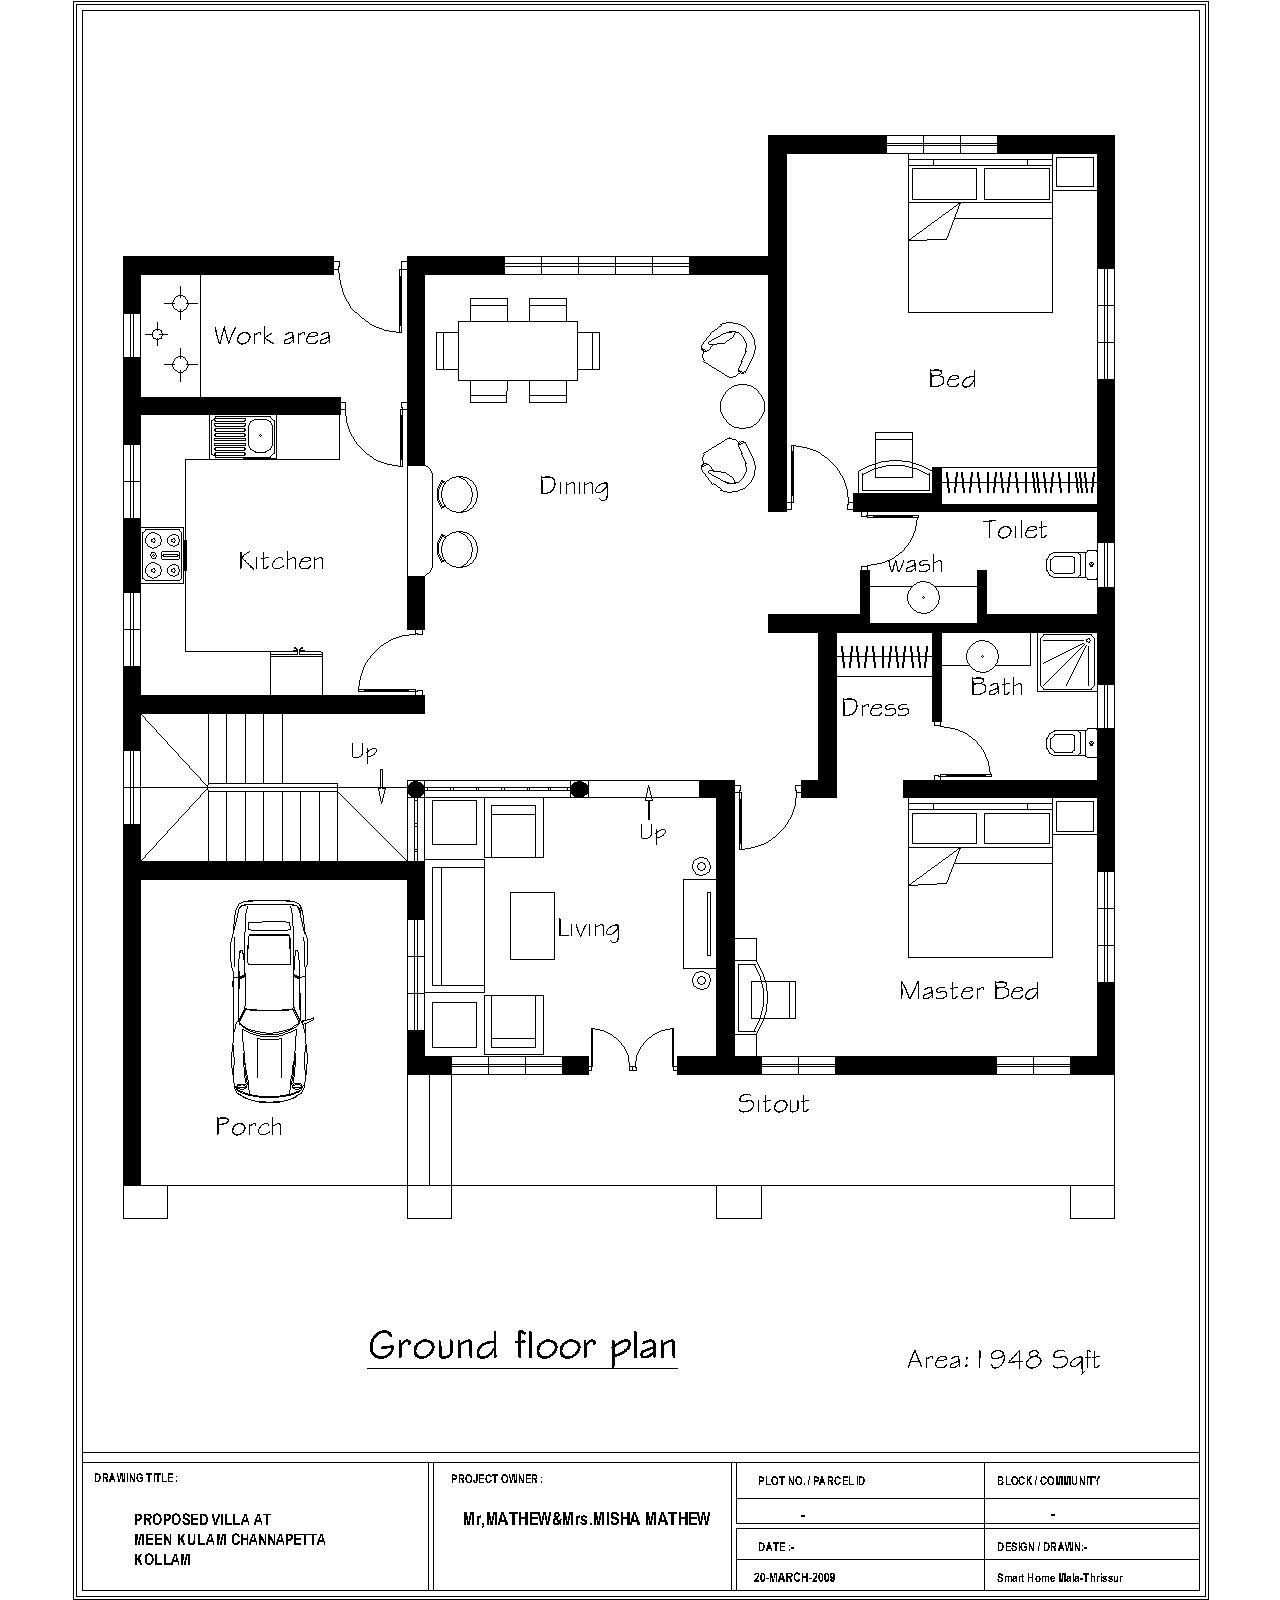 Bedroom Floor Plans Bedroom Furniture High Resolution: ground floor 3 bedroom plans